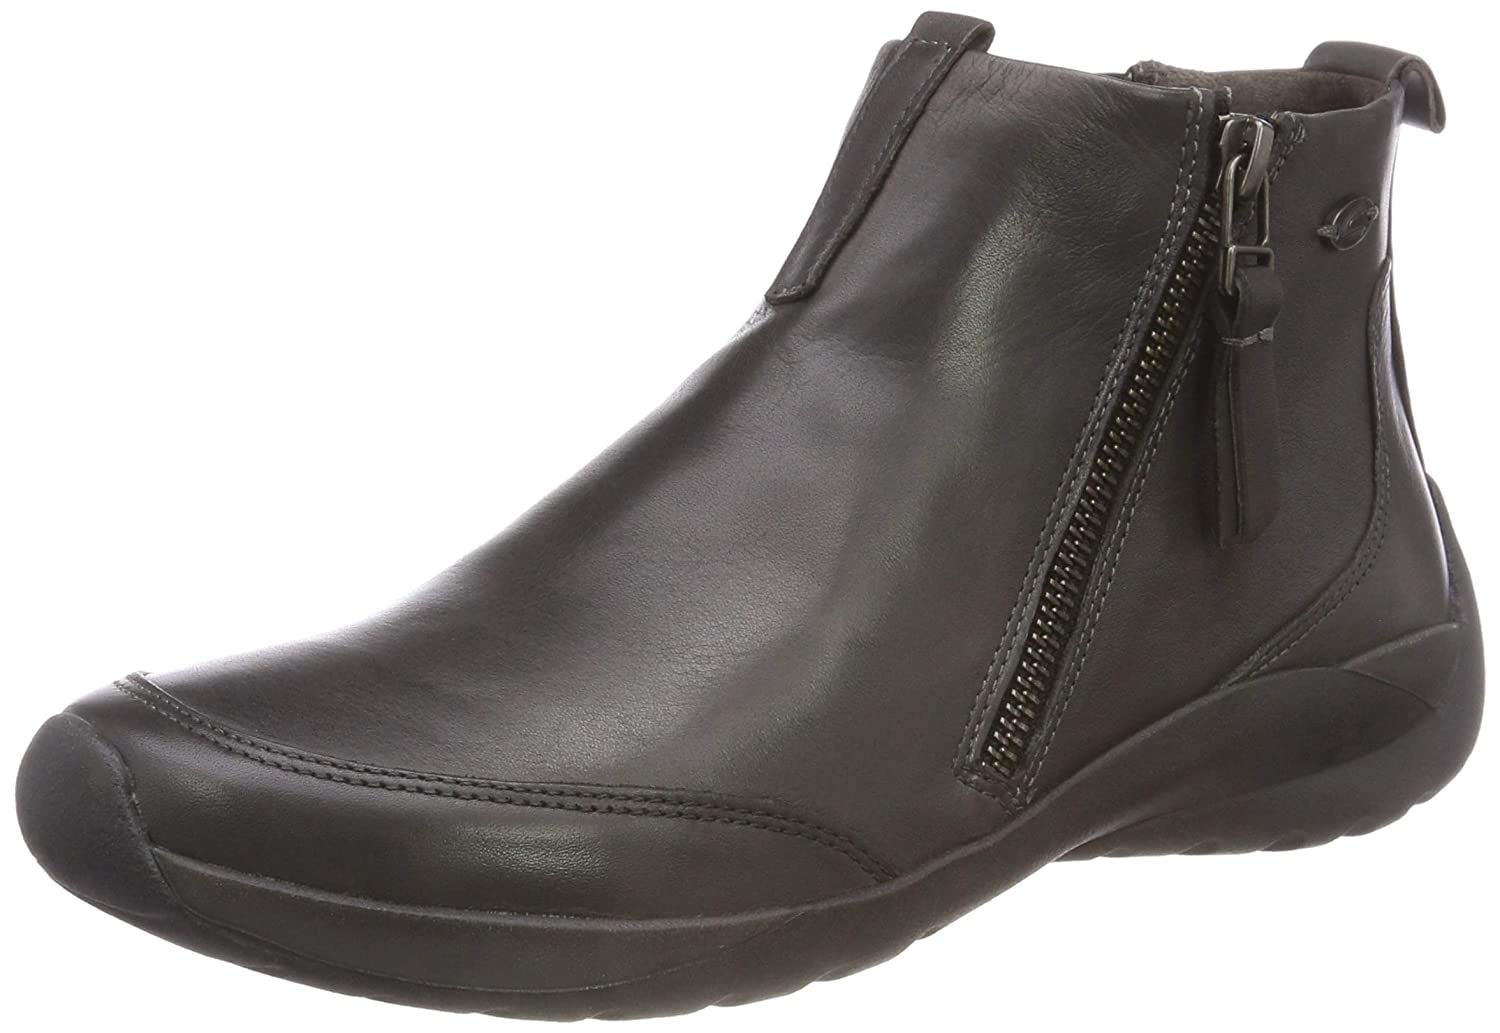 Camel active Damen Moonlight 78 Stiefeletten